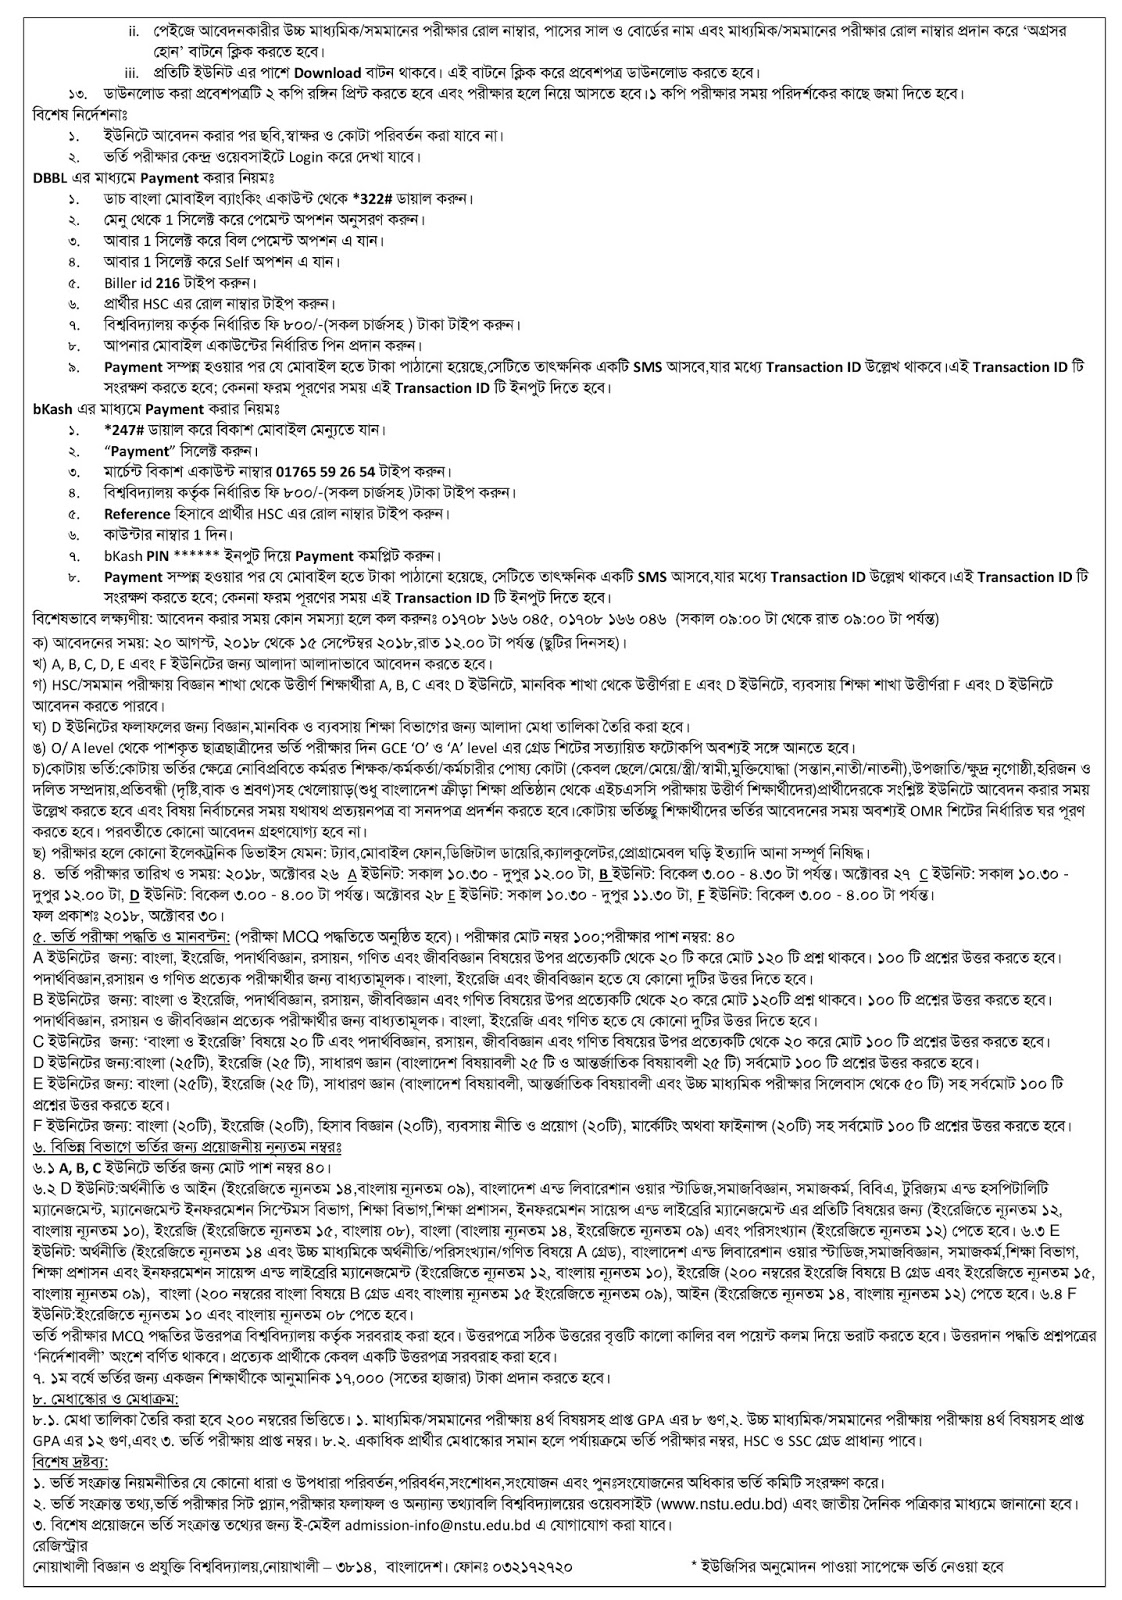 (NSTU) Noakhali Science and Technology University Admission Exam Test Apply Notice Circular 2018-19